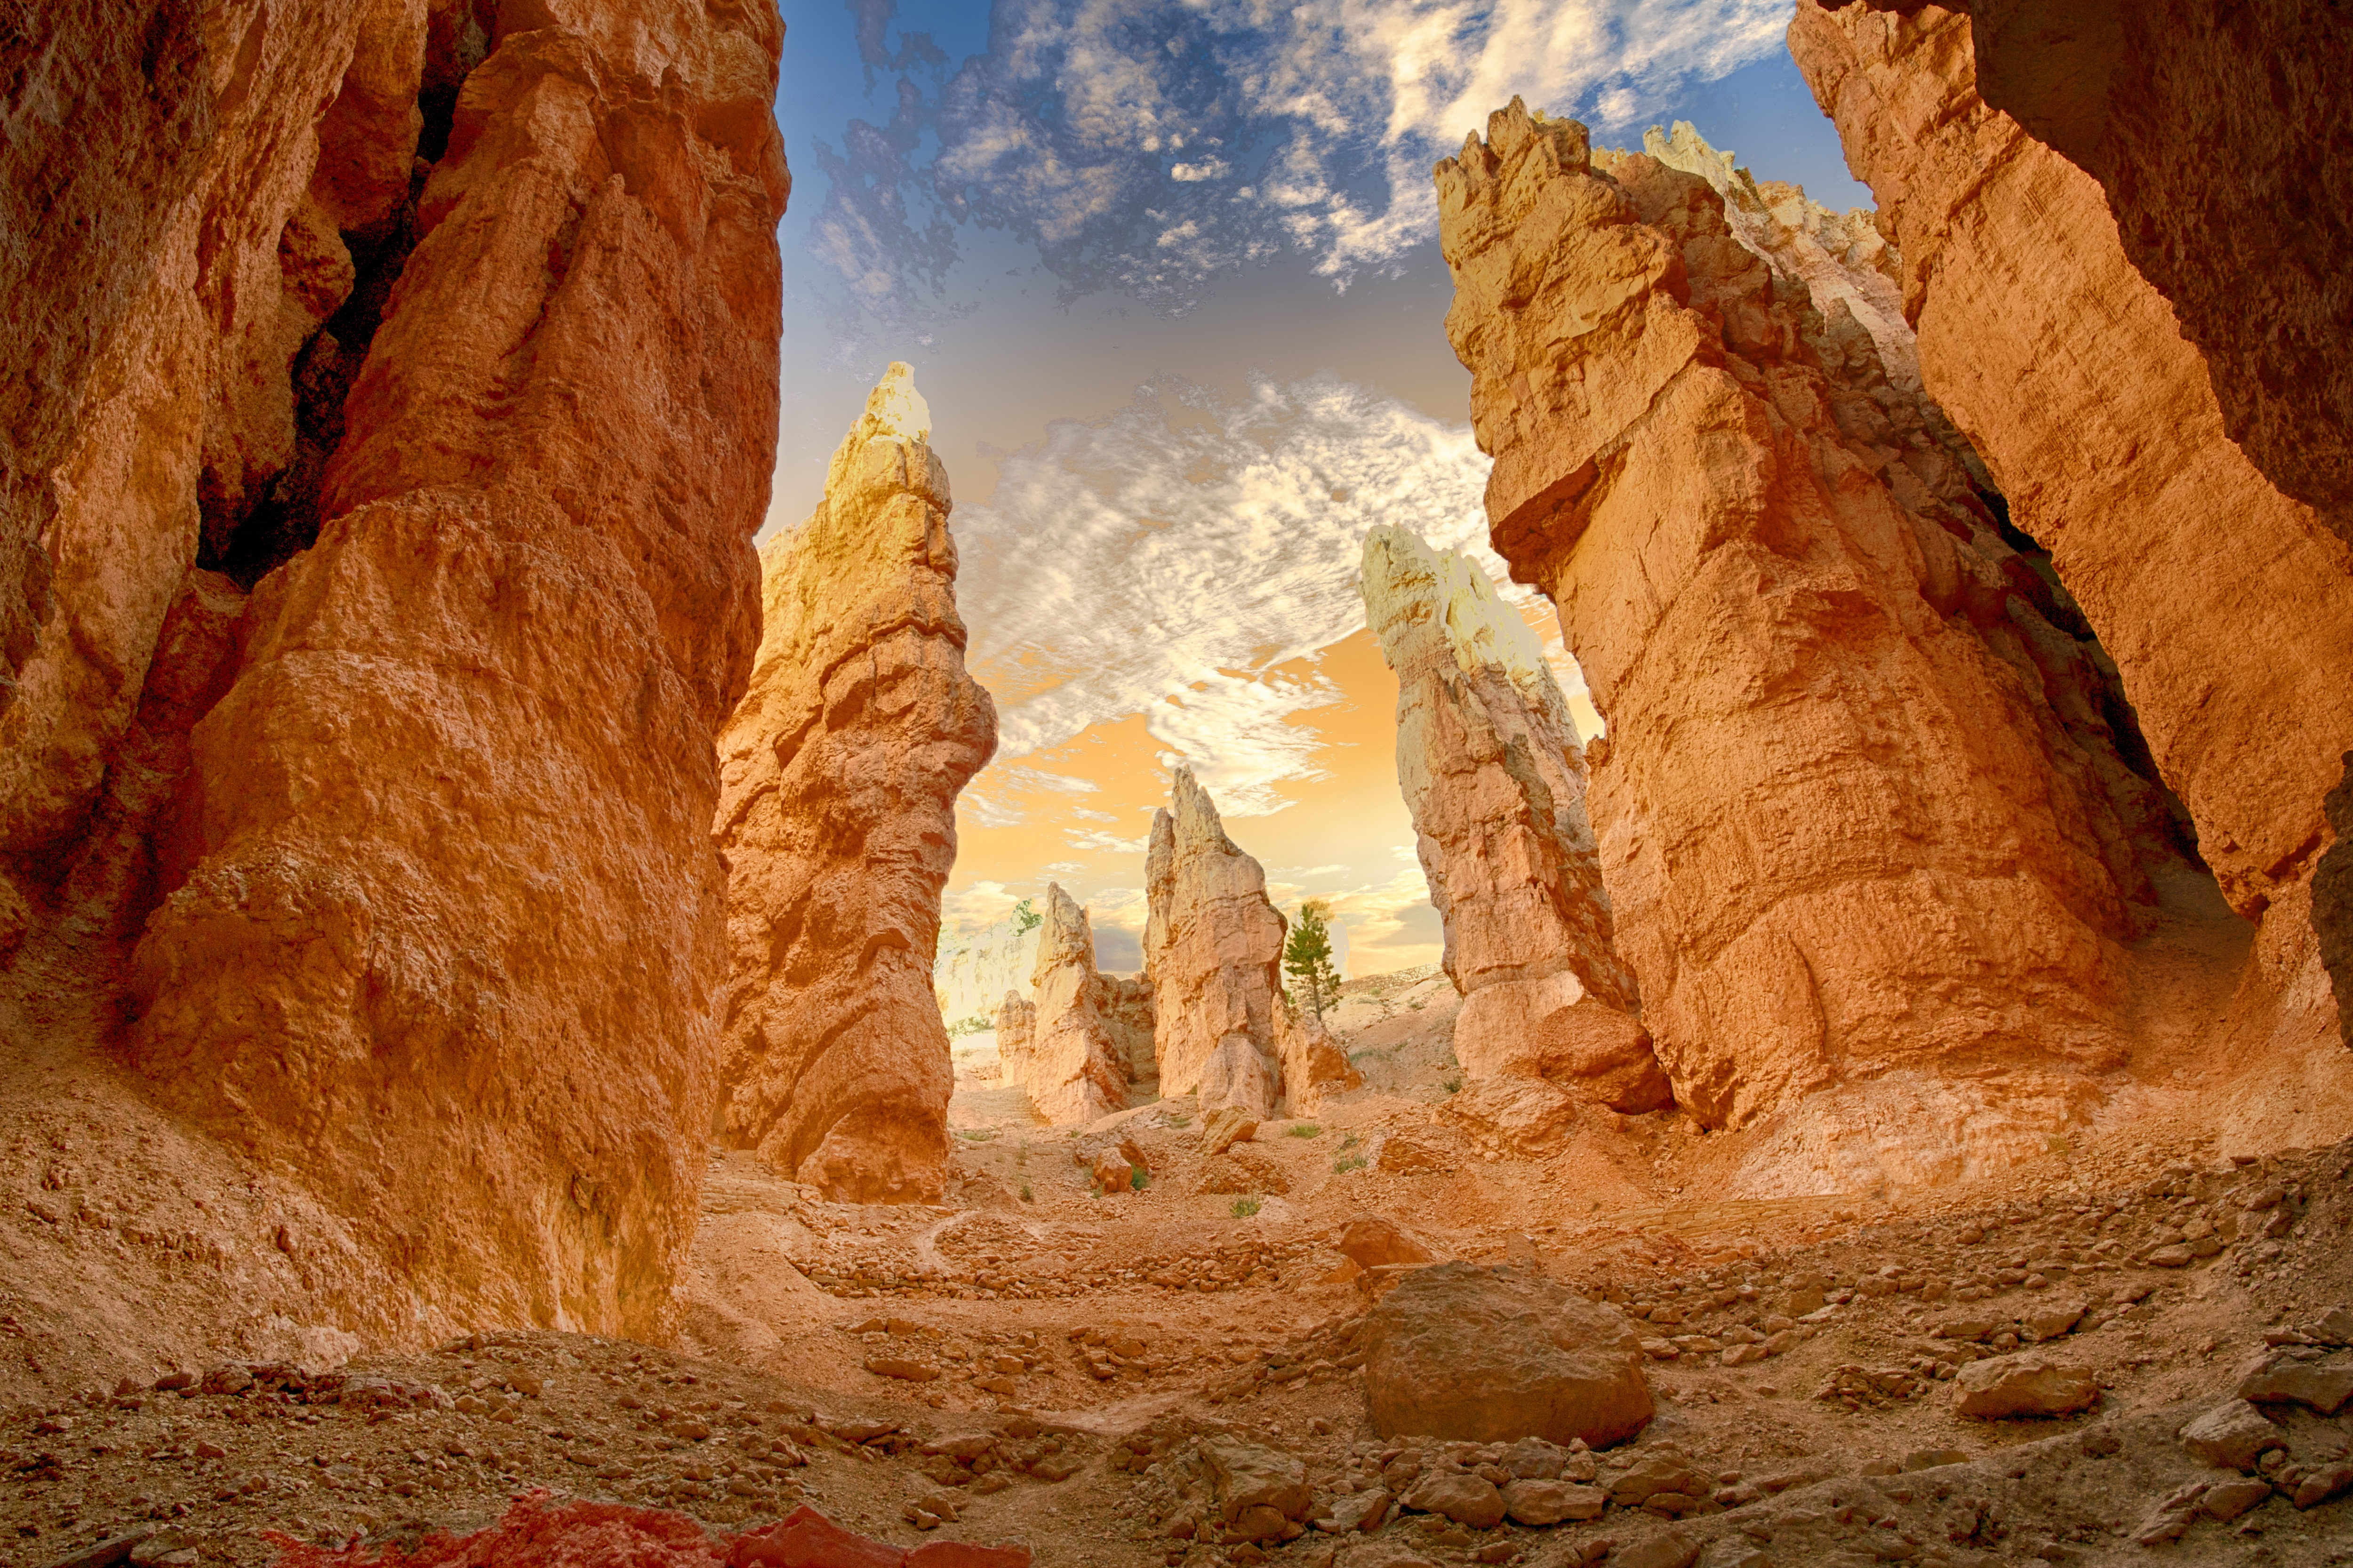 Nyc Iphone Wallpaper Landscape Photo Of Desert Rock Formation 183 Free Stock Photo